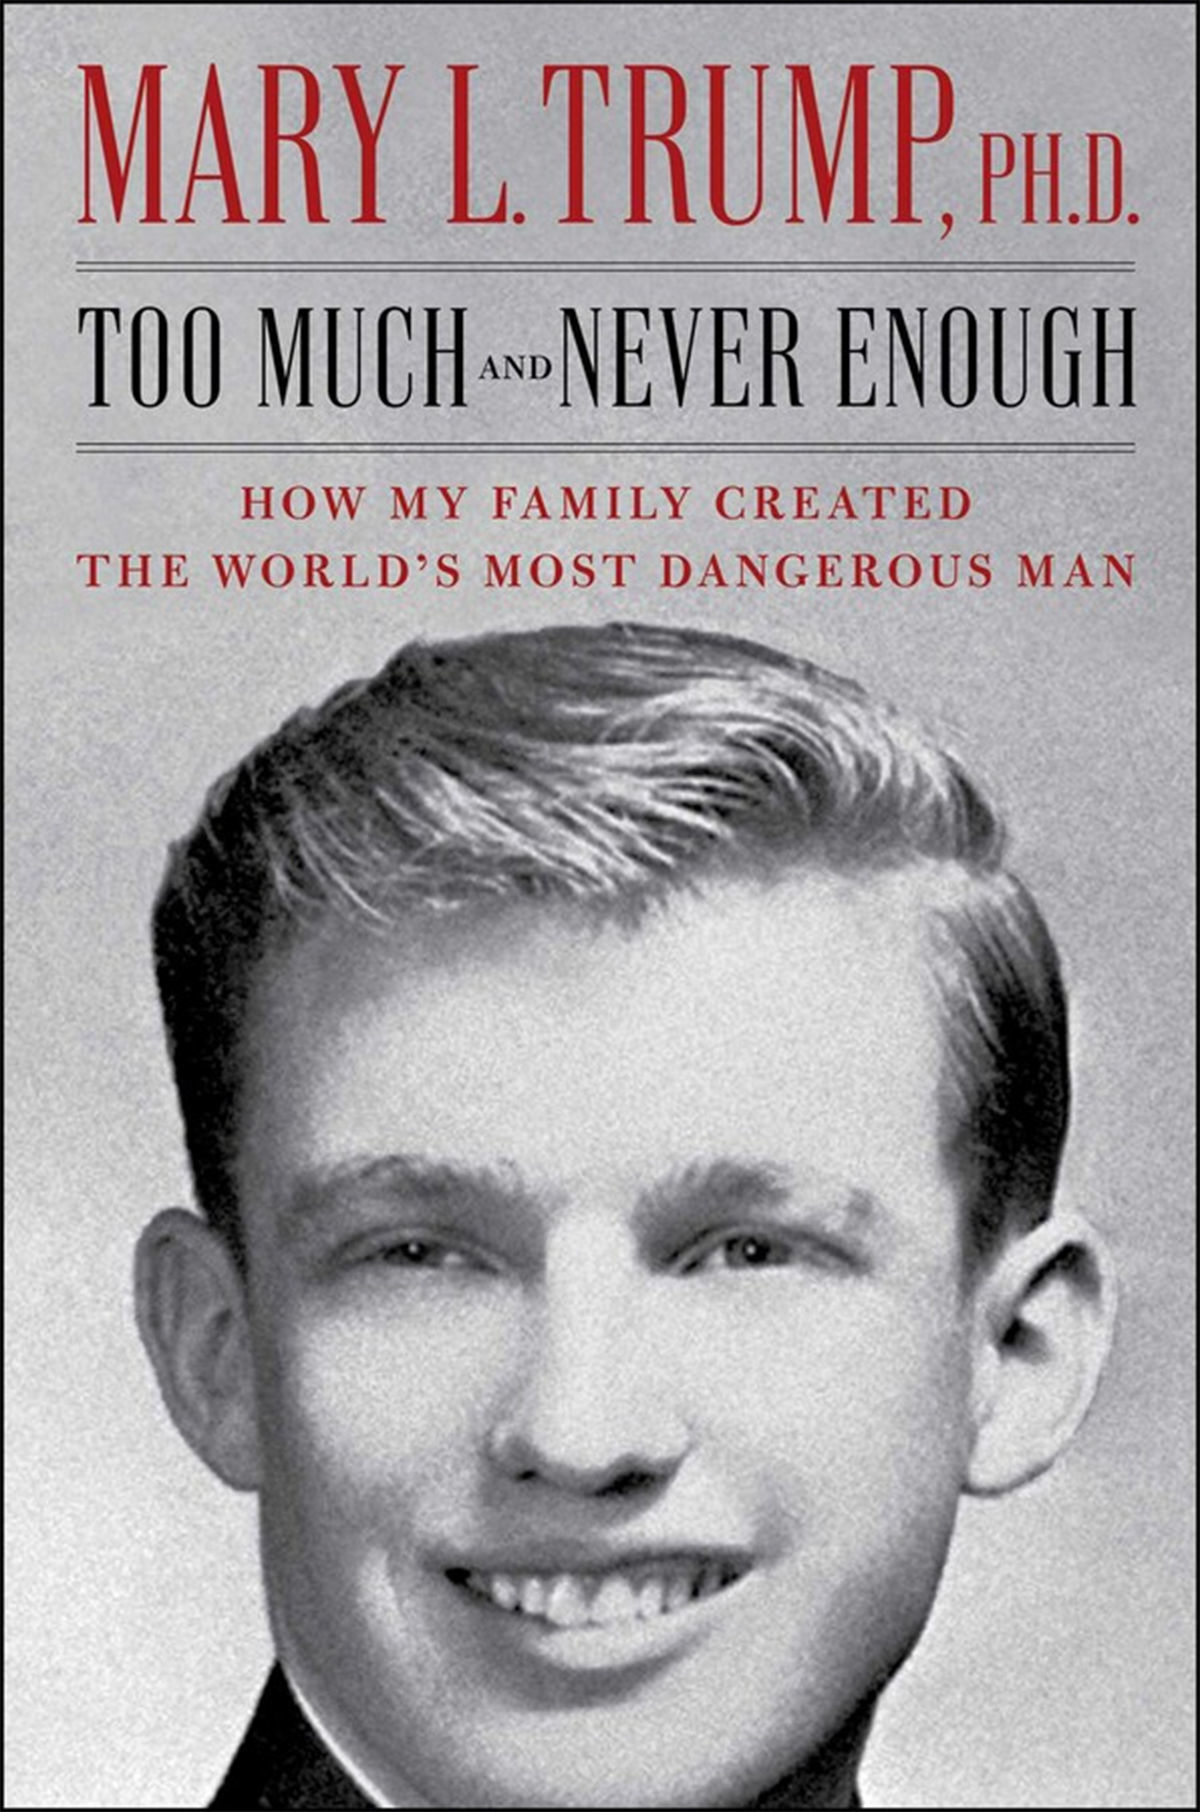 Too Much and Never Enough by Mary L. Trump, from Simon & Schuster